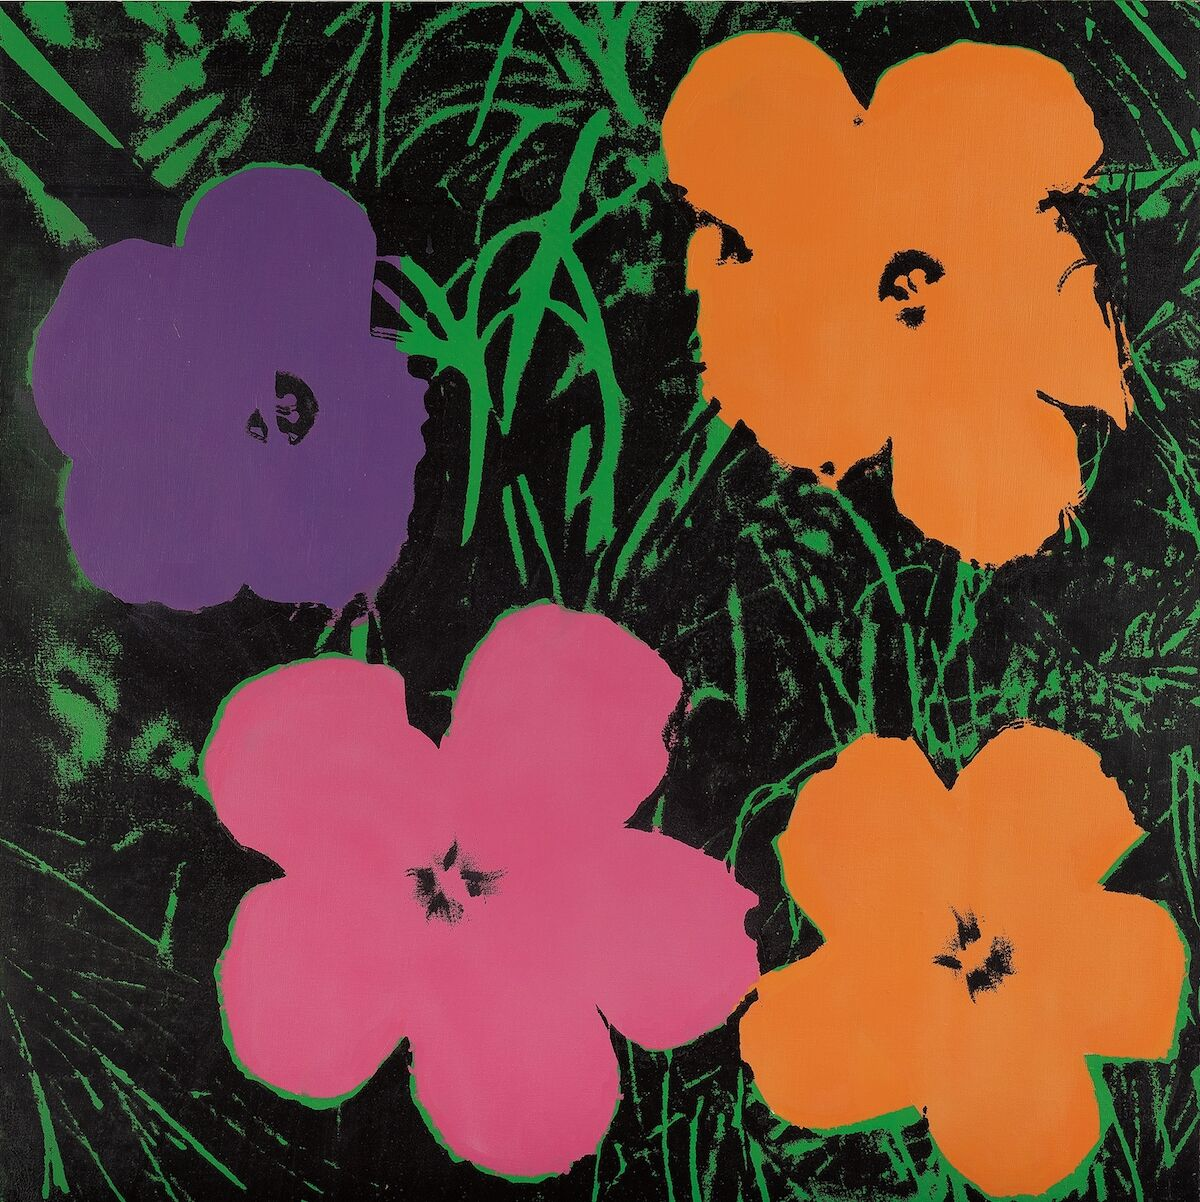 Andy Warhol, Late Four-Foot Flowers, 1967. Sold for $7.4 million. Courtesy Phillips.